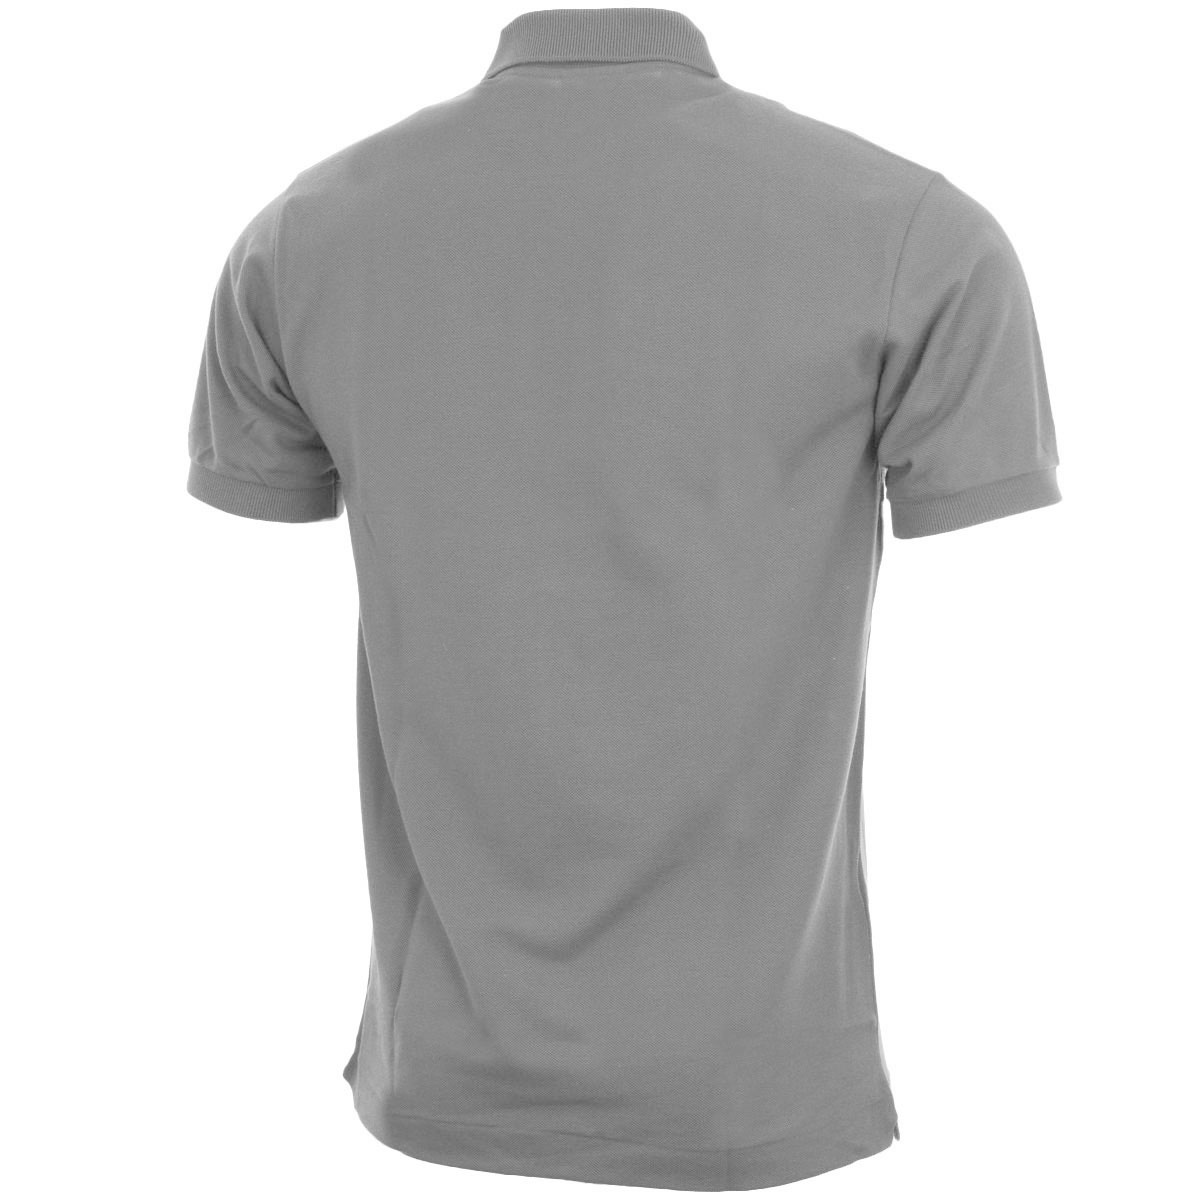 Lacoste-Mens-Classic-Cotton-L1212-Short-Sleeve-Polo-Shirt-26-OFF-RRP thumbnail 61